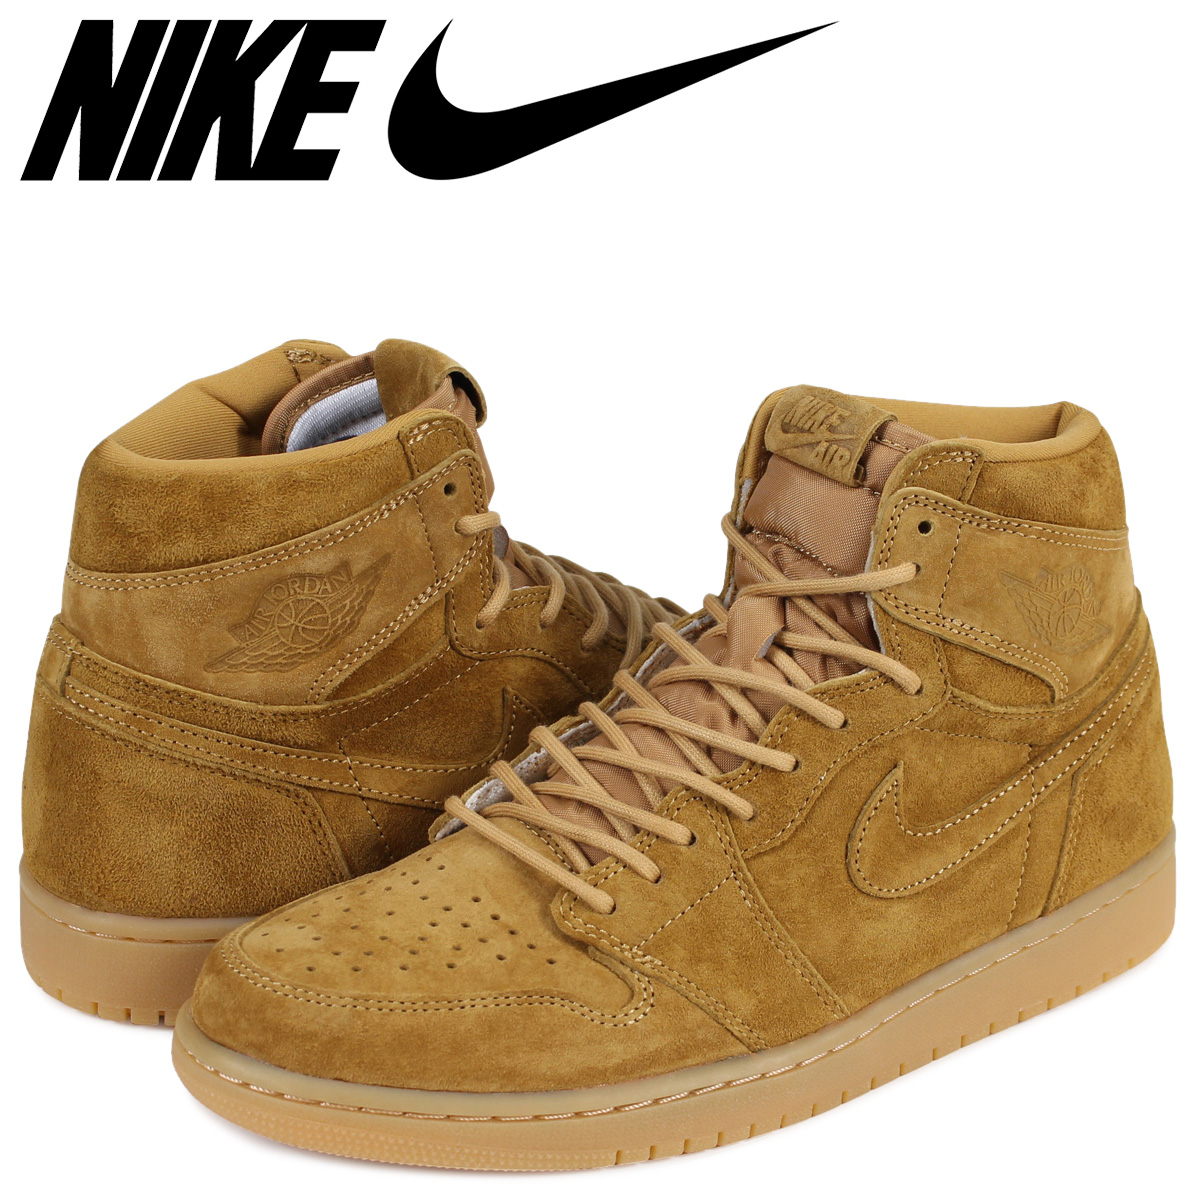 d67b9a3f72e NIKE AIR JORDAN 1 RETRO HIGH OG Nike Air Jordan 1 nostalgic high sneakers  555,088- ...